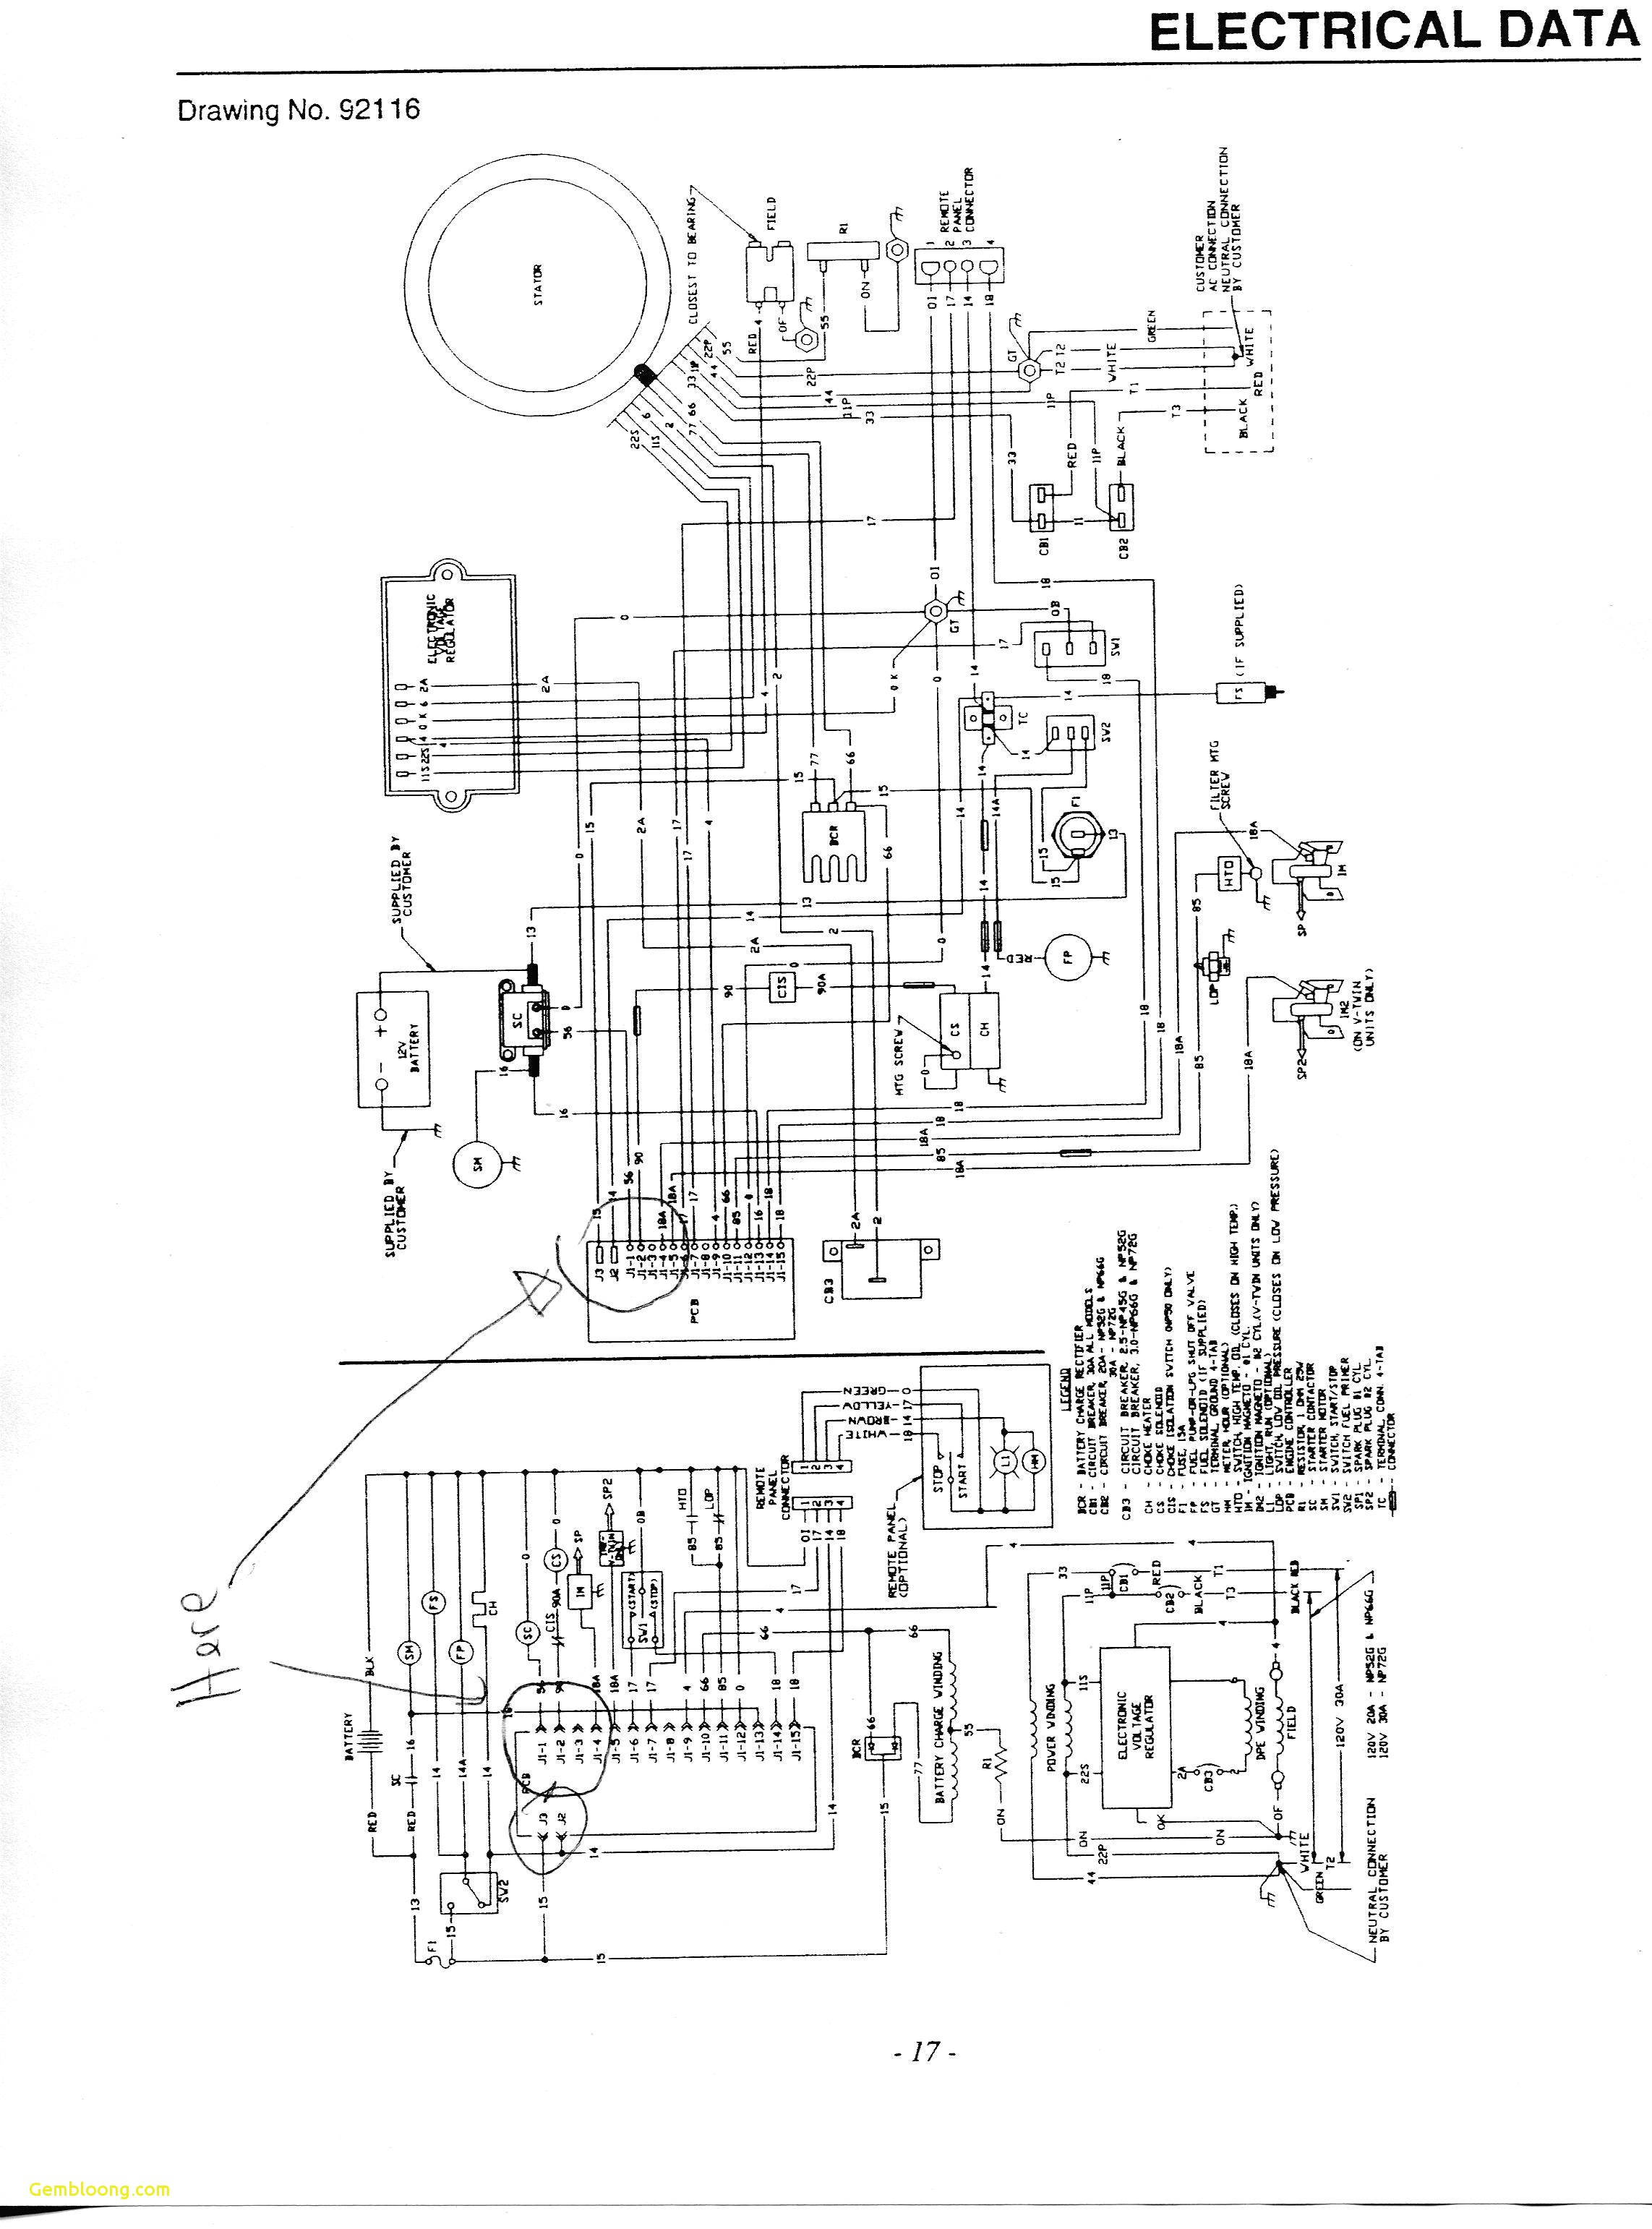 Suzuki Intruder 700 Wiring Diagrams